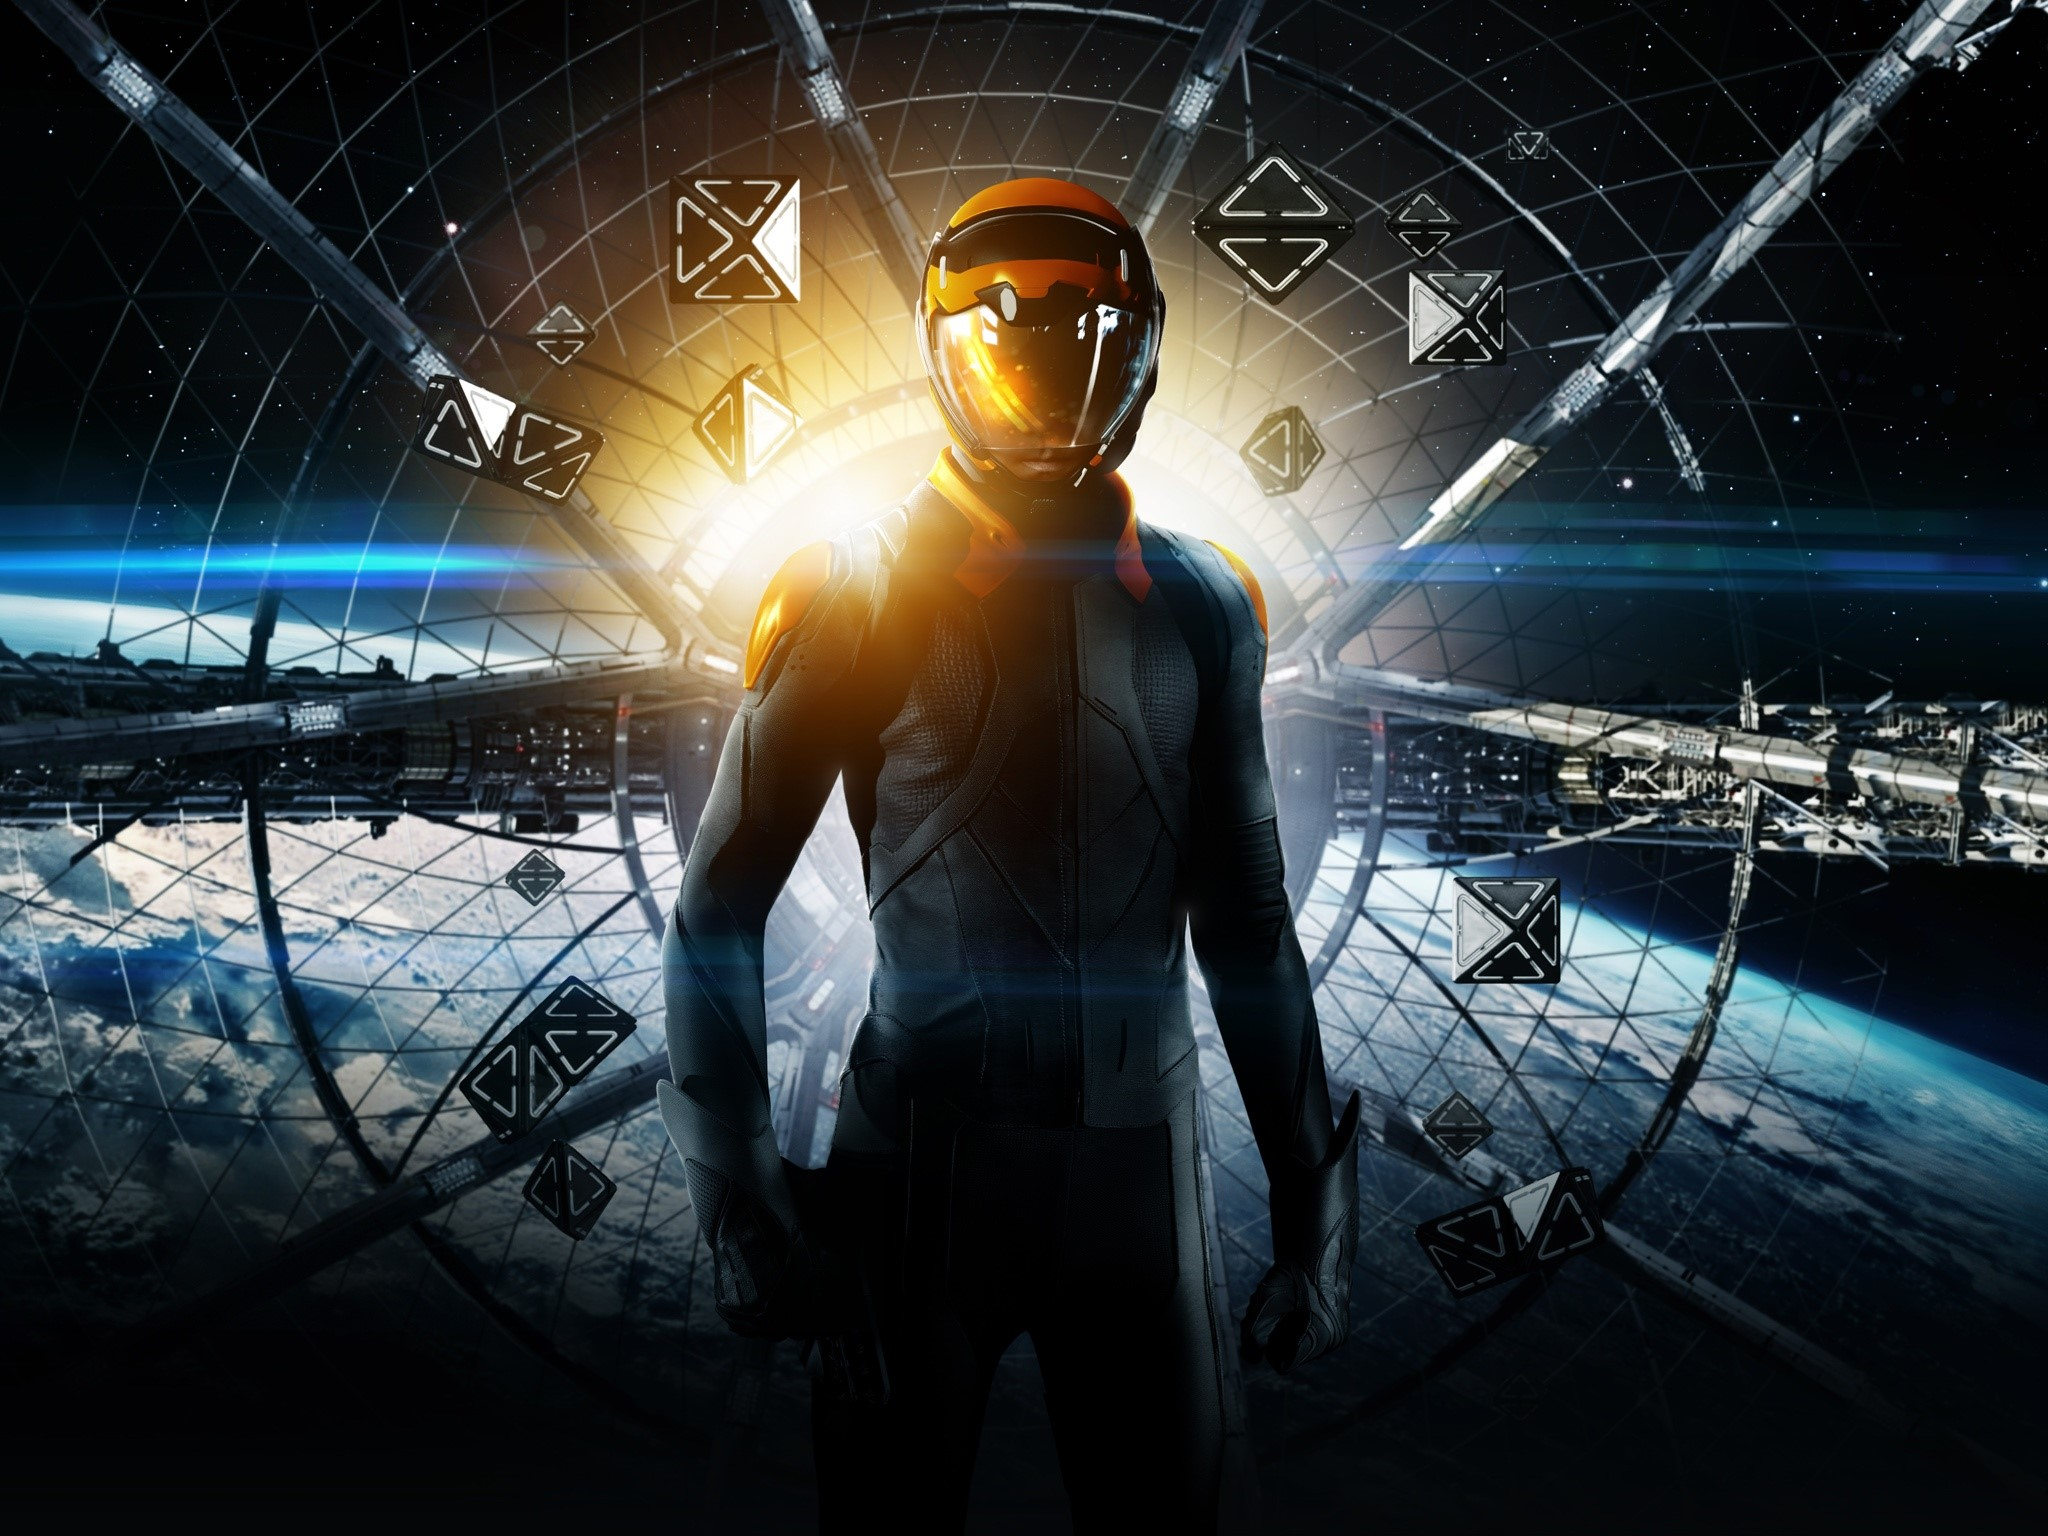 Fondos de pantalla Enders game